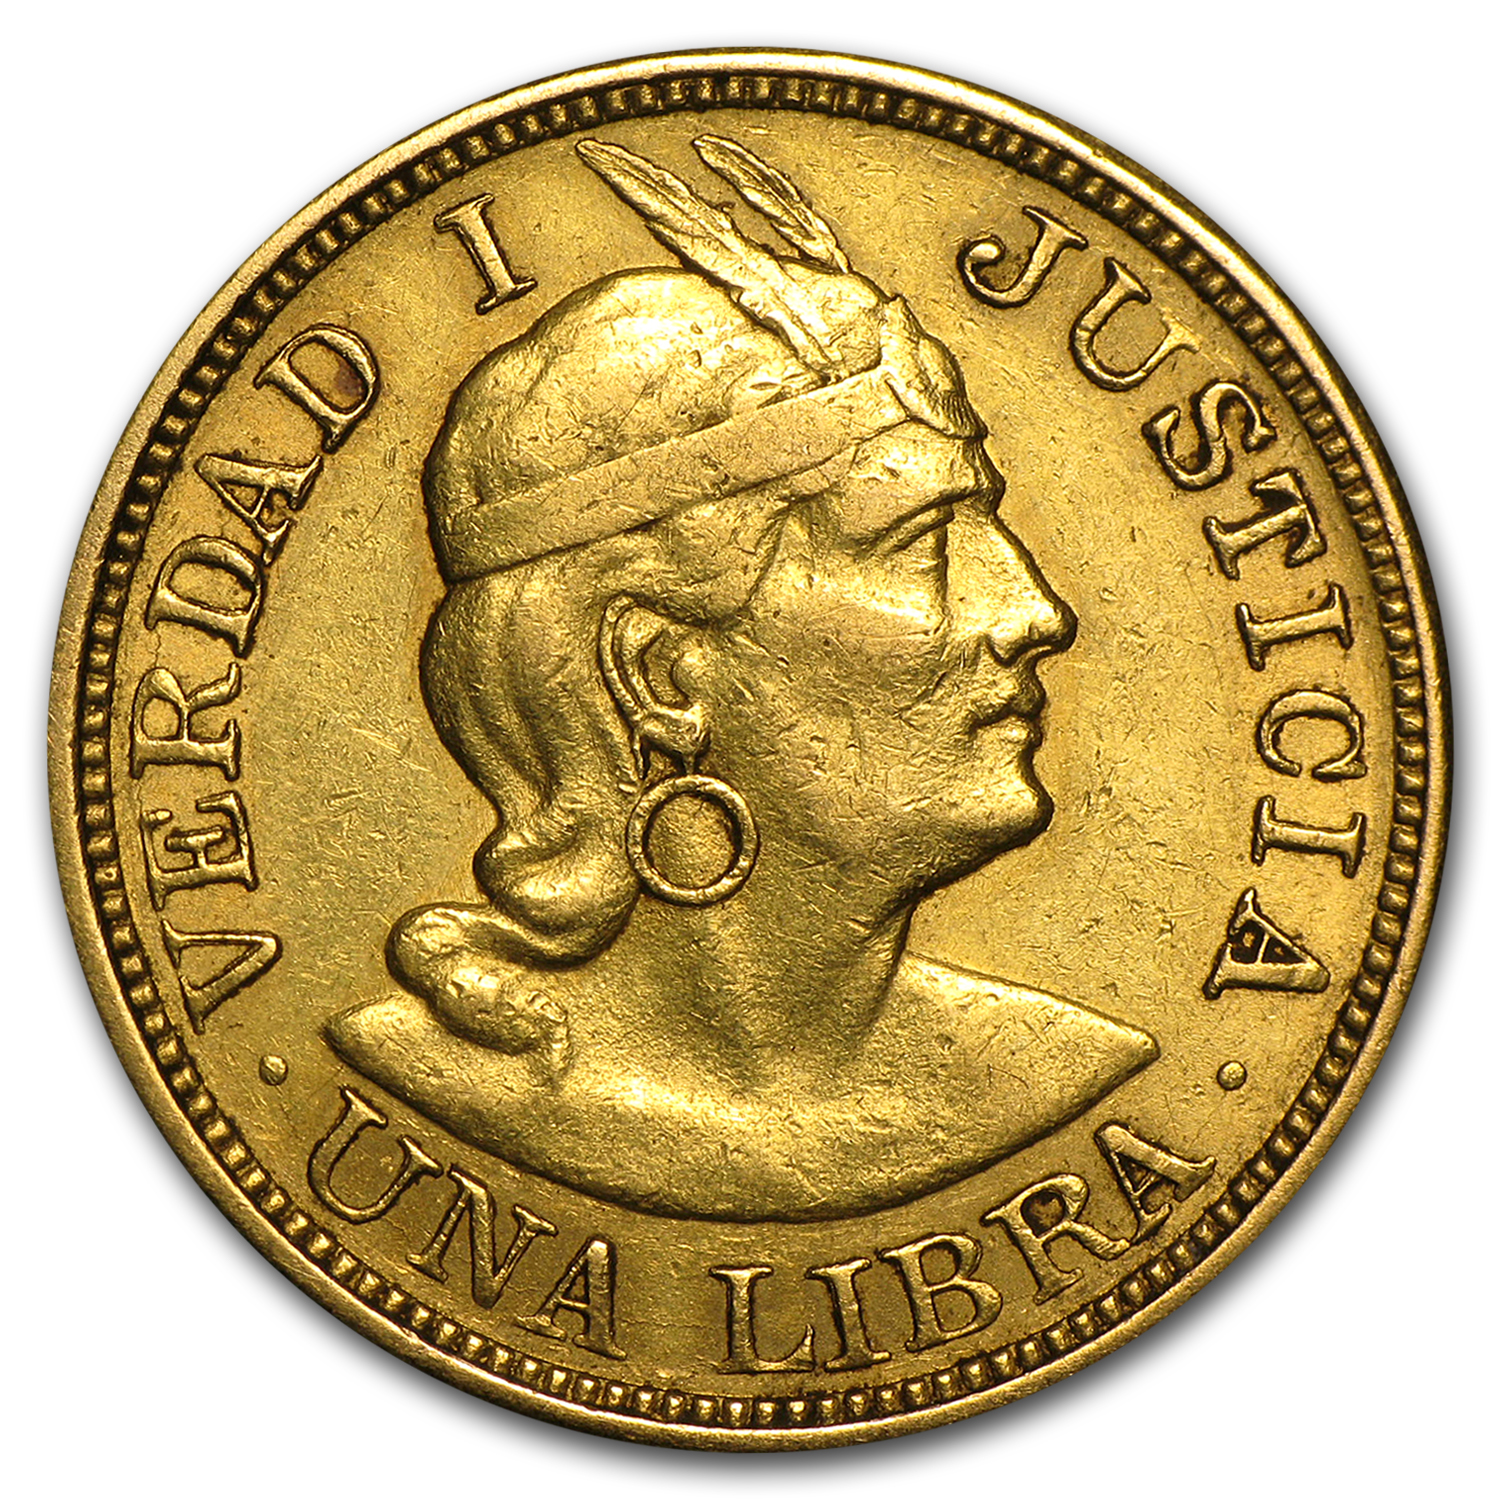 Peru 1 Libra Gold Average Circulated - Random Dates